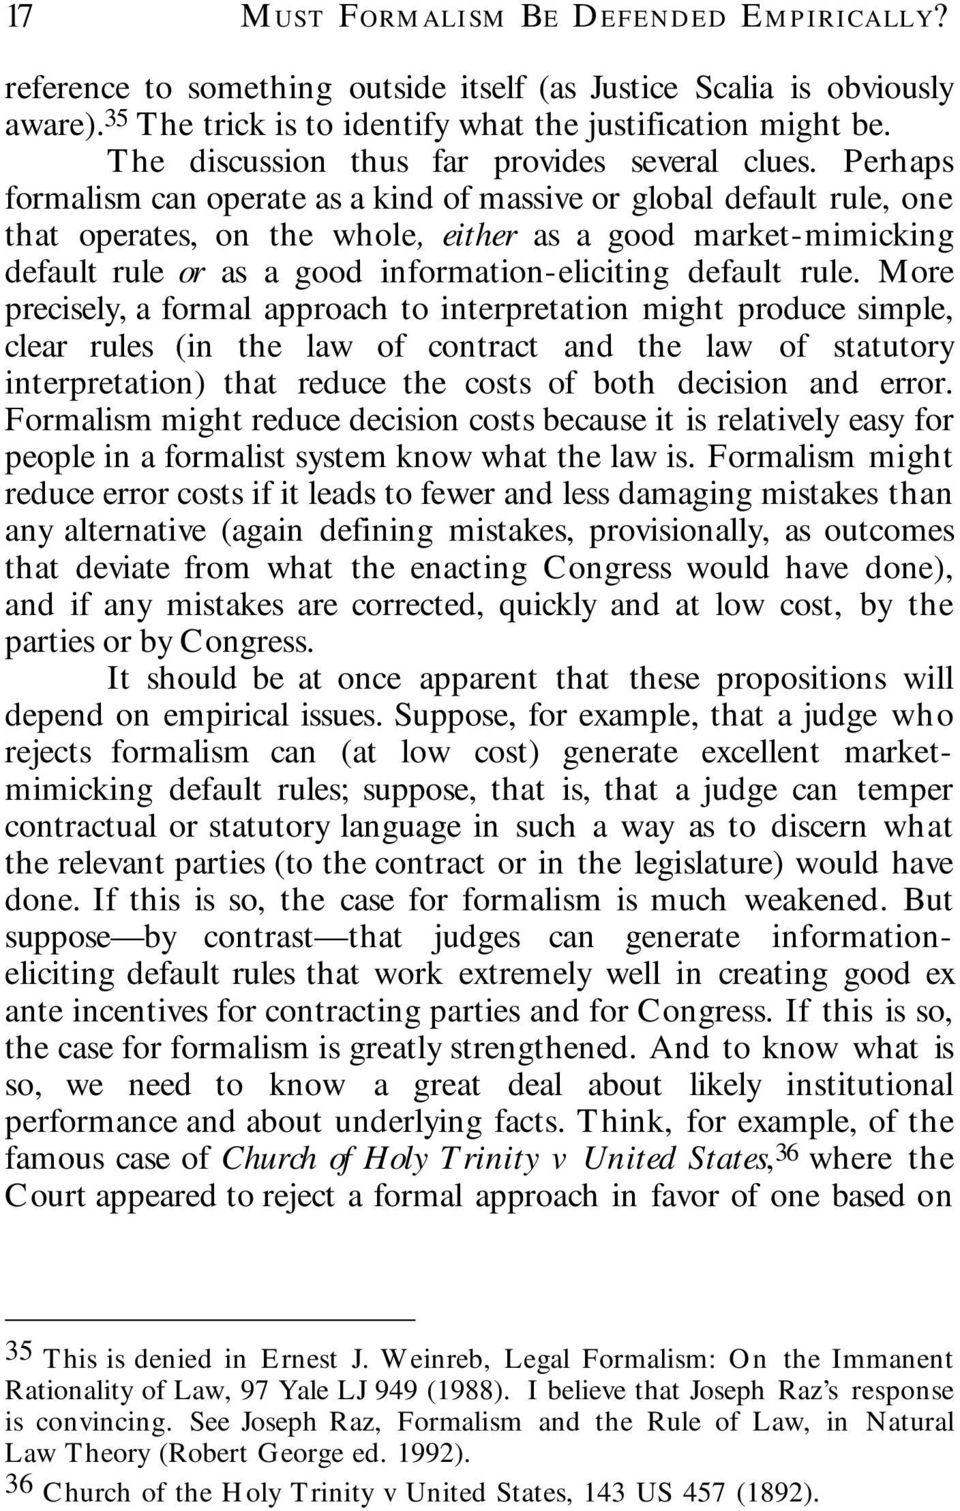 Perhaps formalism can operate as a kind of massive or global default rule, one that operates, on the whole, either as a good market-mimicking default rule or as a good information-eliciting default